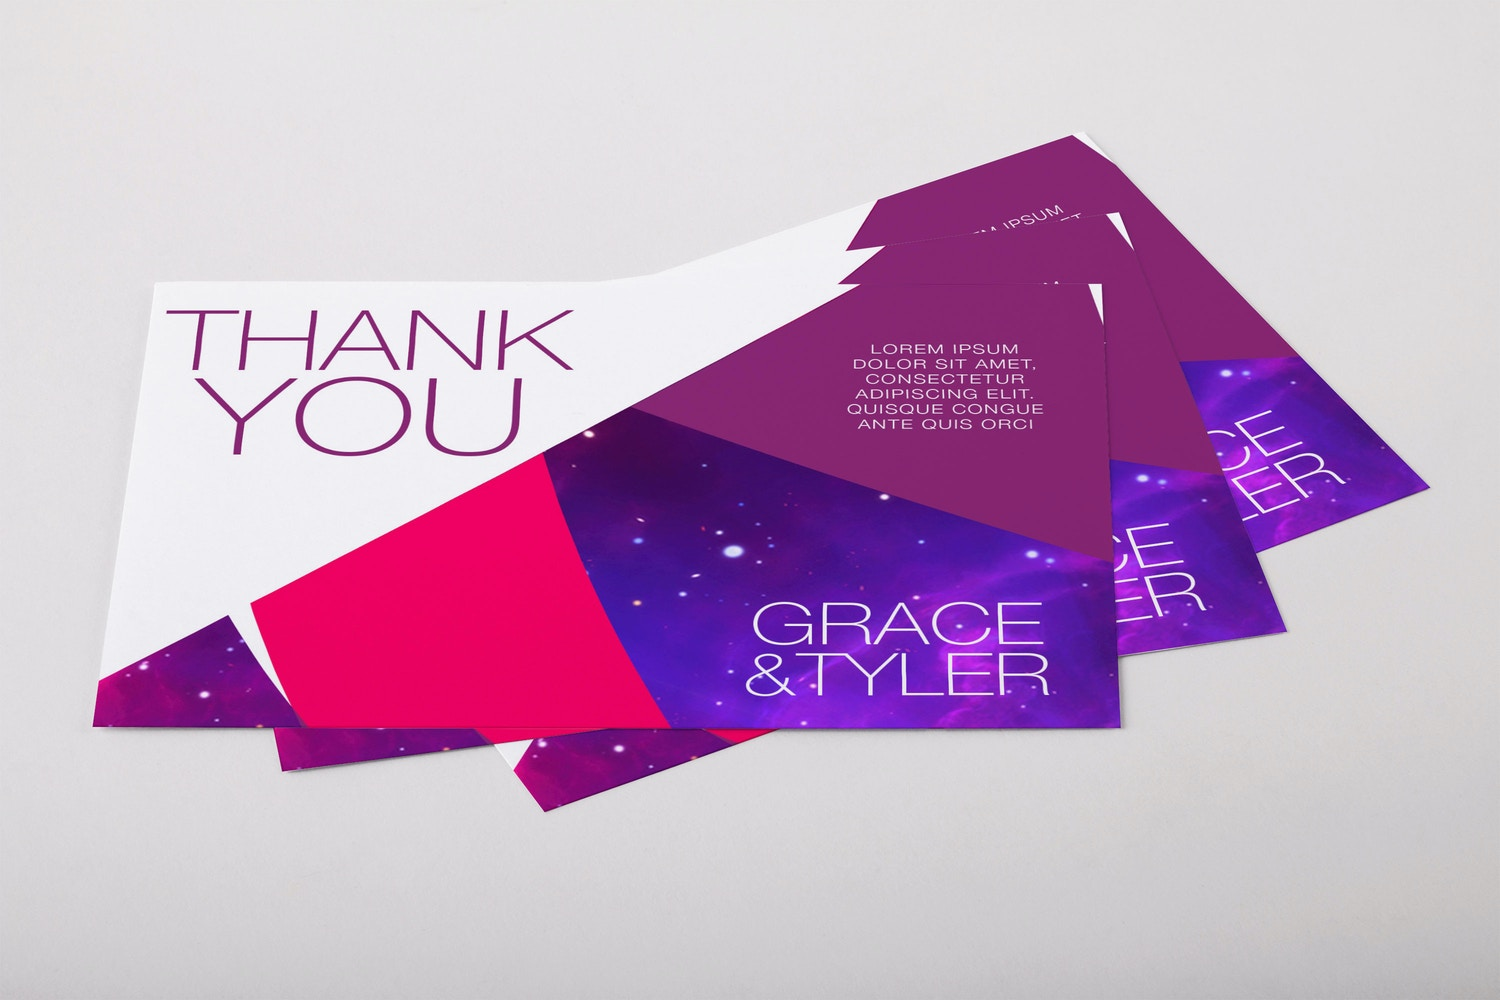 Thank You Card Mini PSD Mockup 01 by Original Mockups on Original Mockups